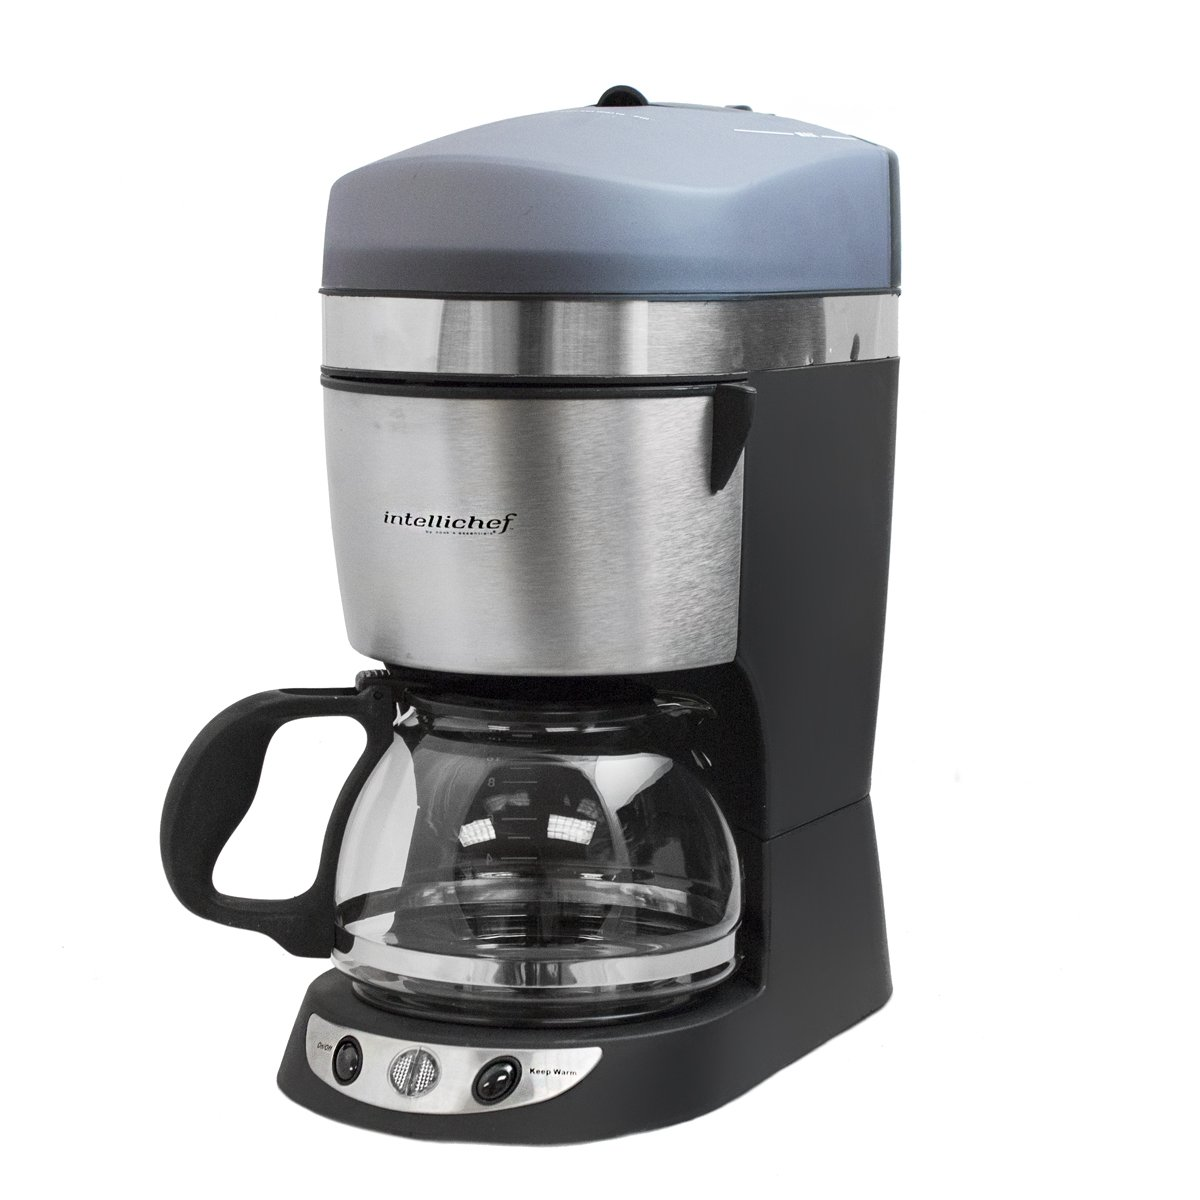 Amazon.com: 10 Cup High Speed Intellichef Coffee Maker by Cook Essentials:  Drip Coffeemakers: Kitchen & Dining